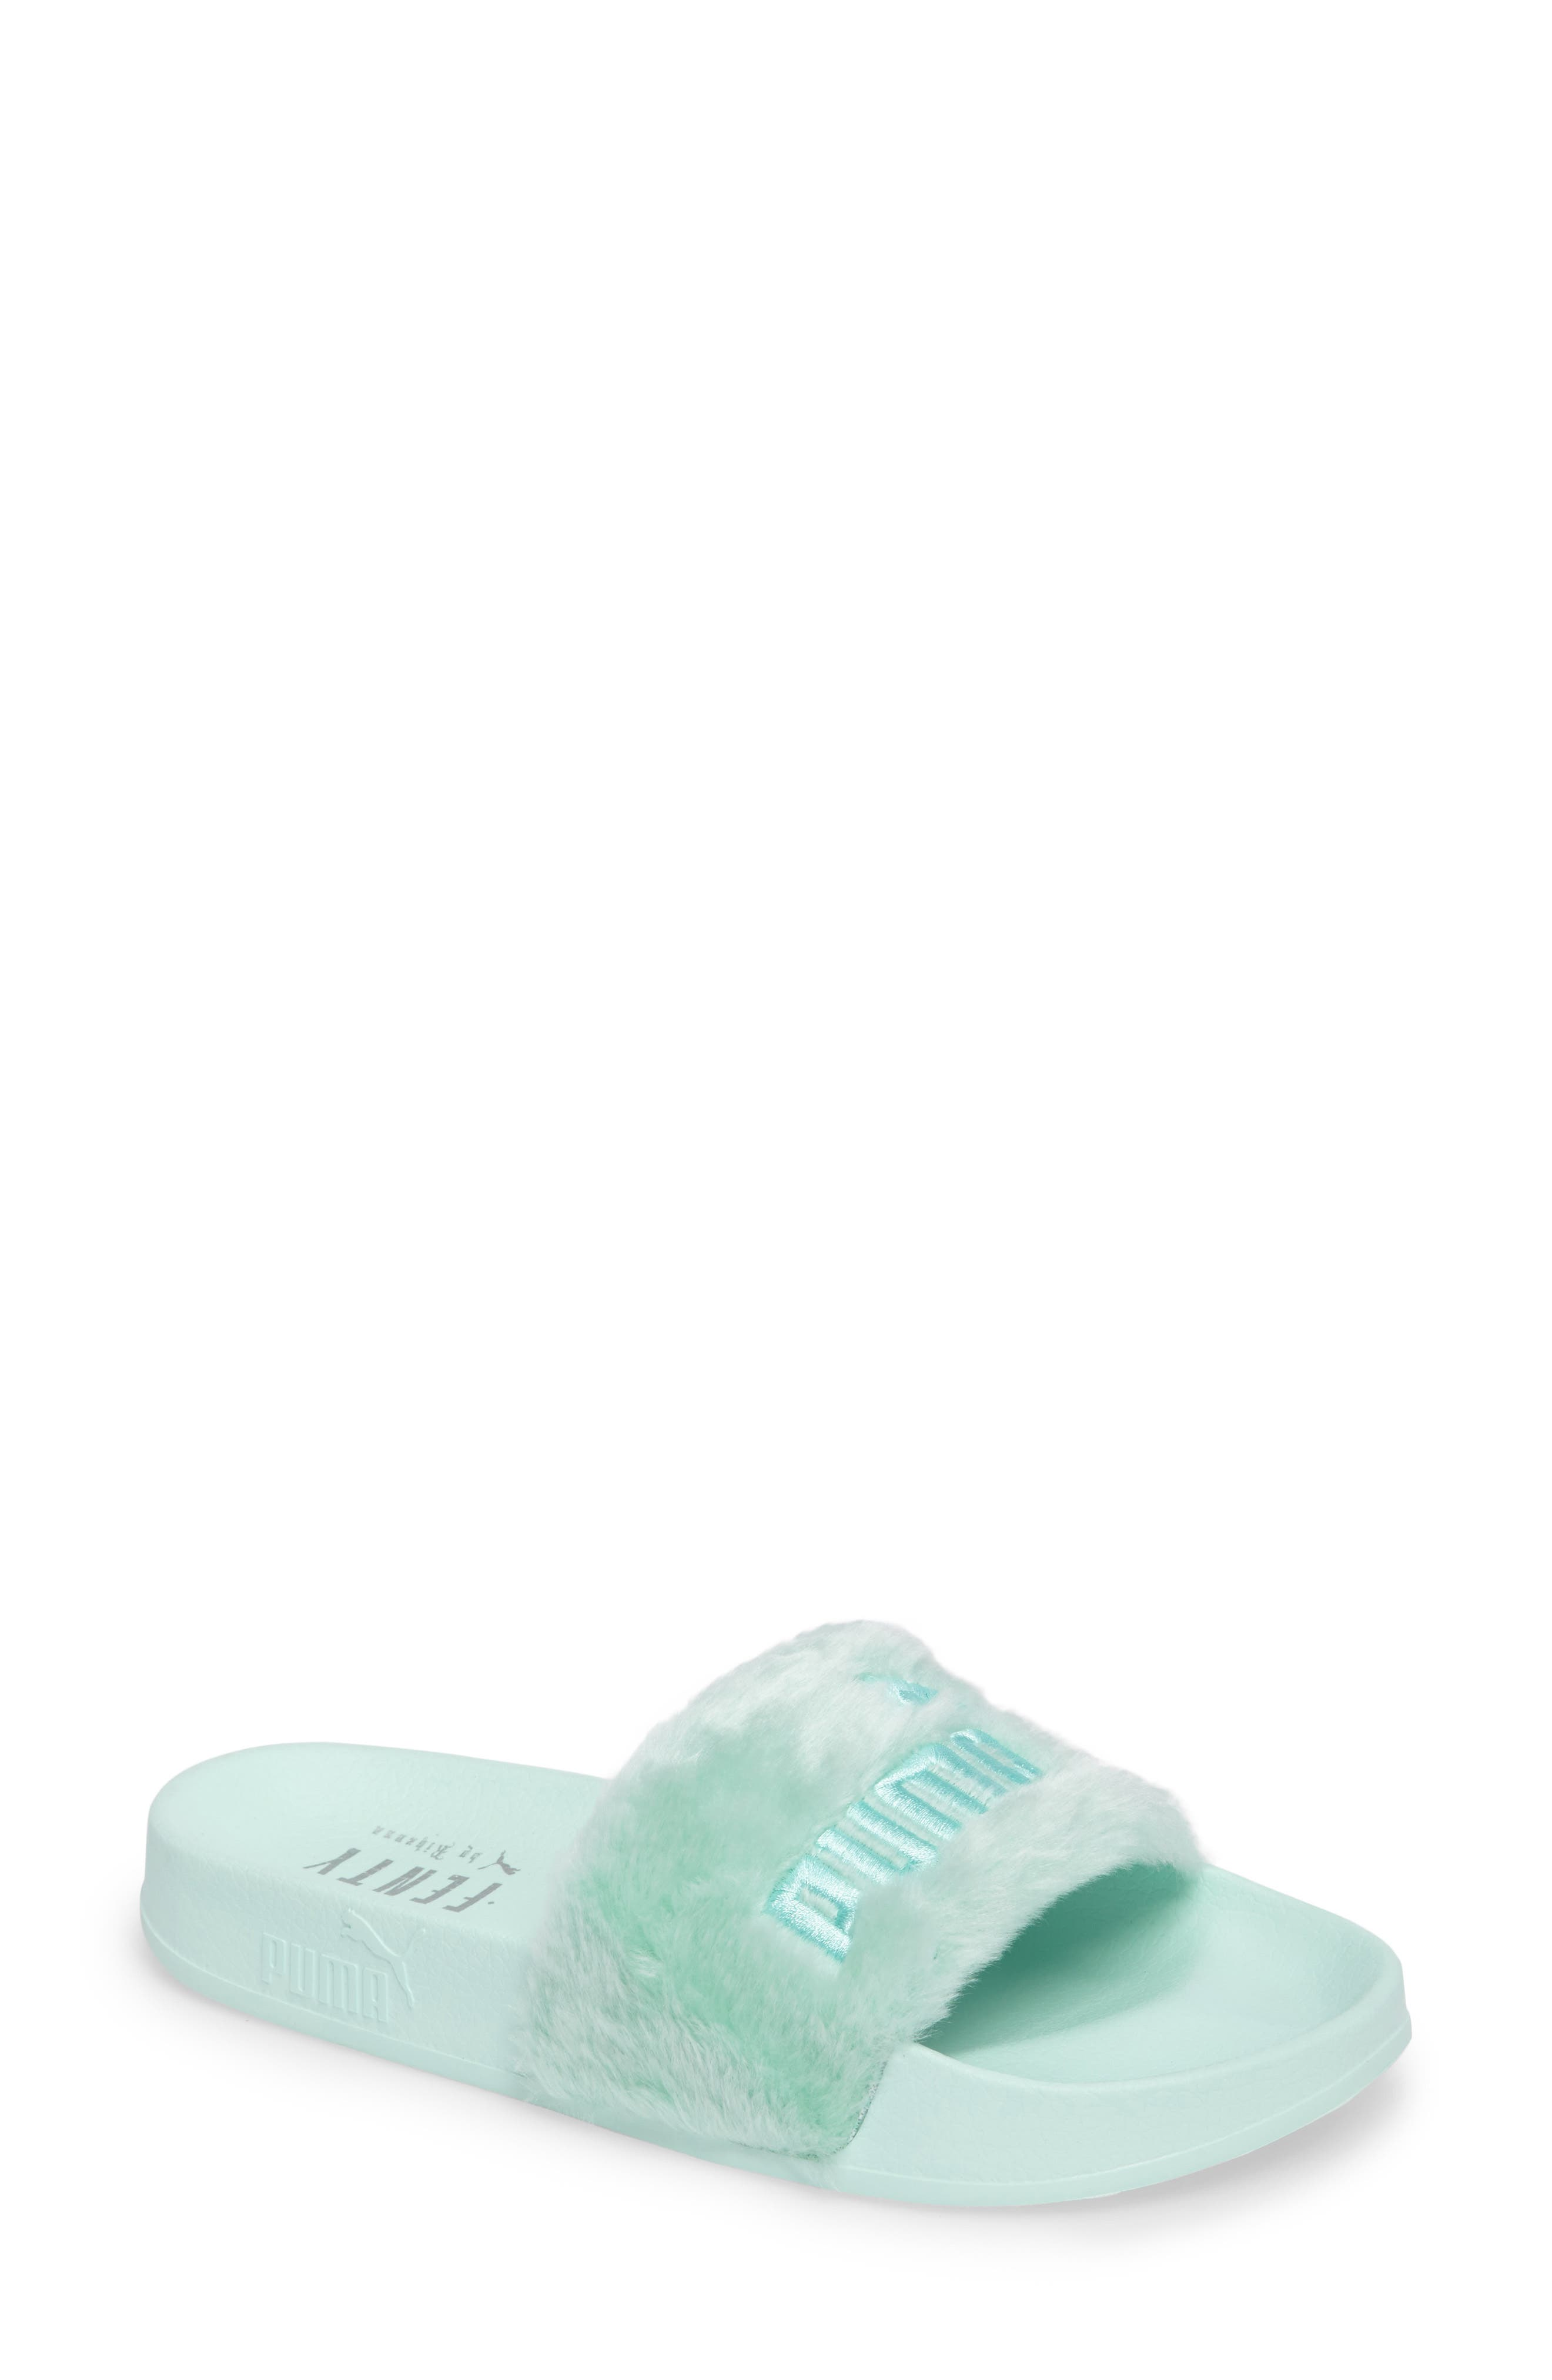 FENTY PUMA by Rihanna 'Leadcat Fenty' Faux Fur Slide Sandal (Women)